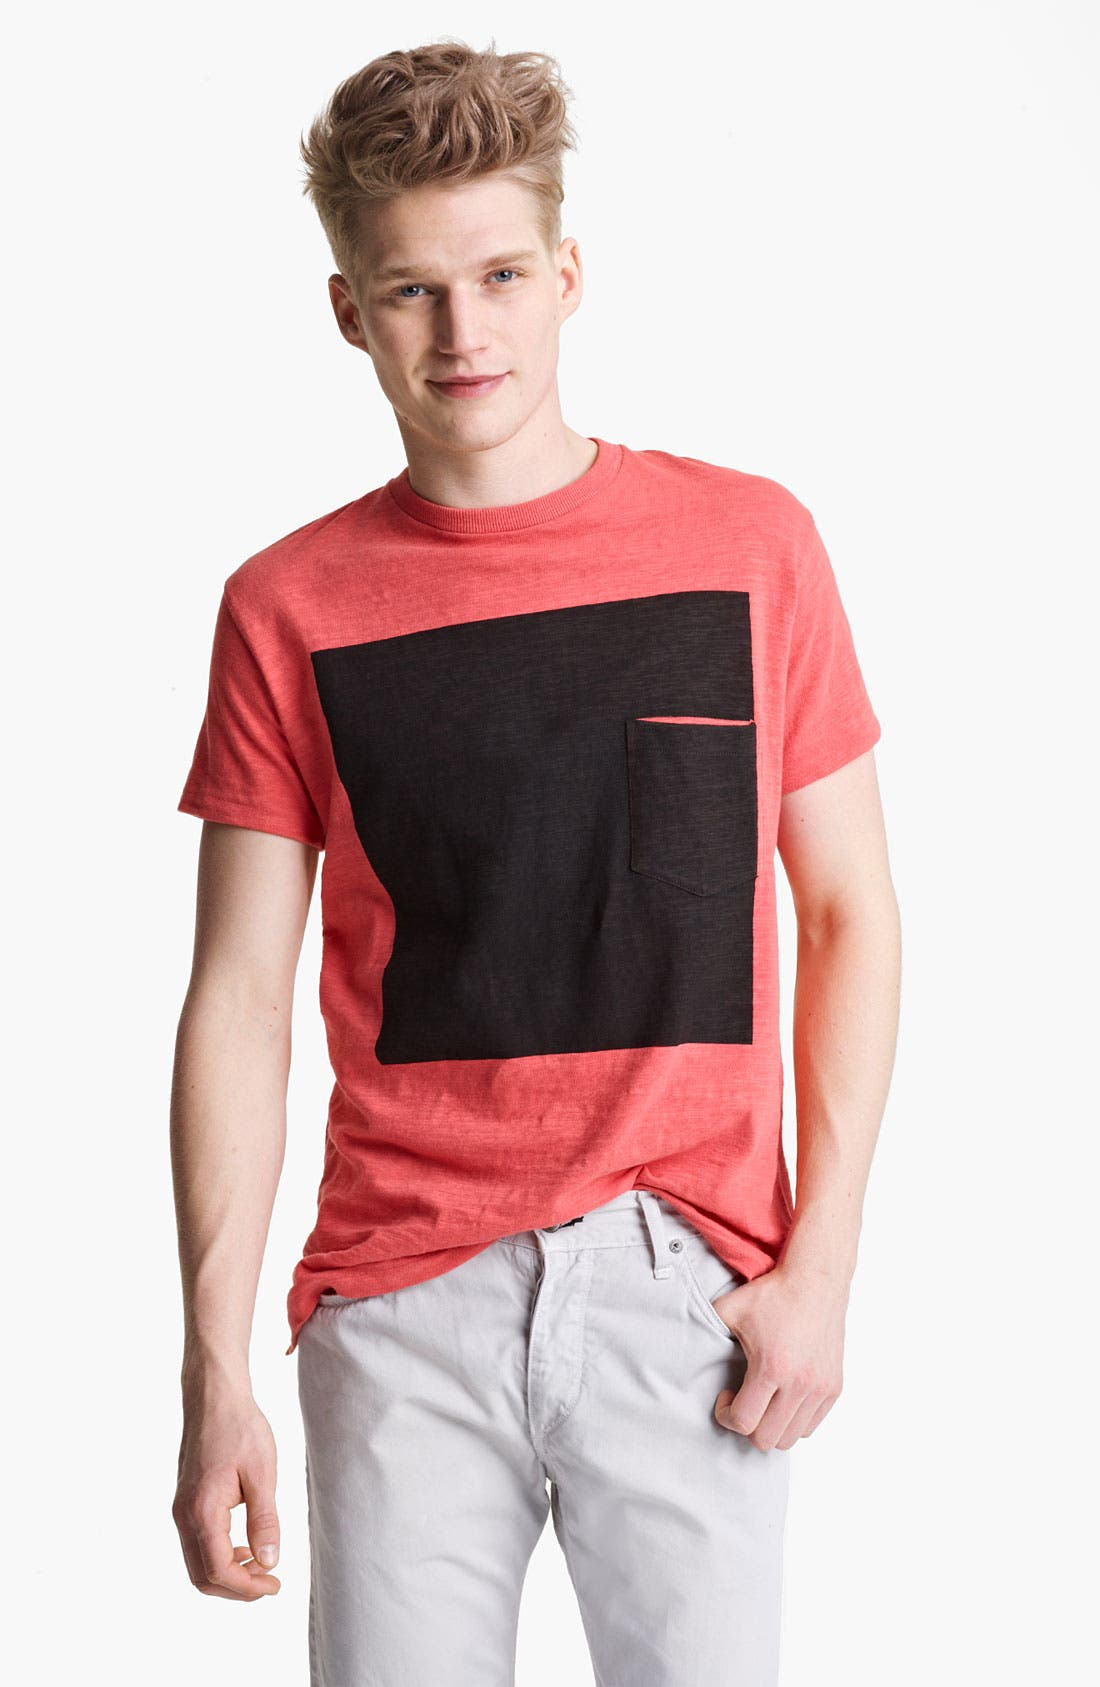 Main Image - rag & bone Square Print Graphic T-Shirt